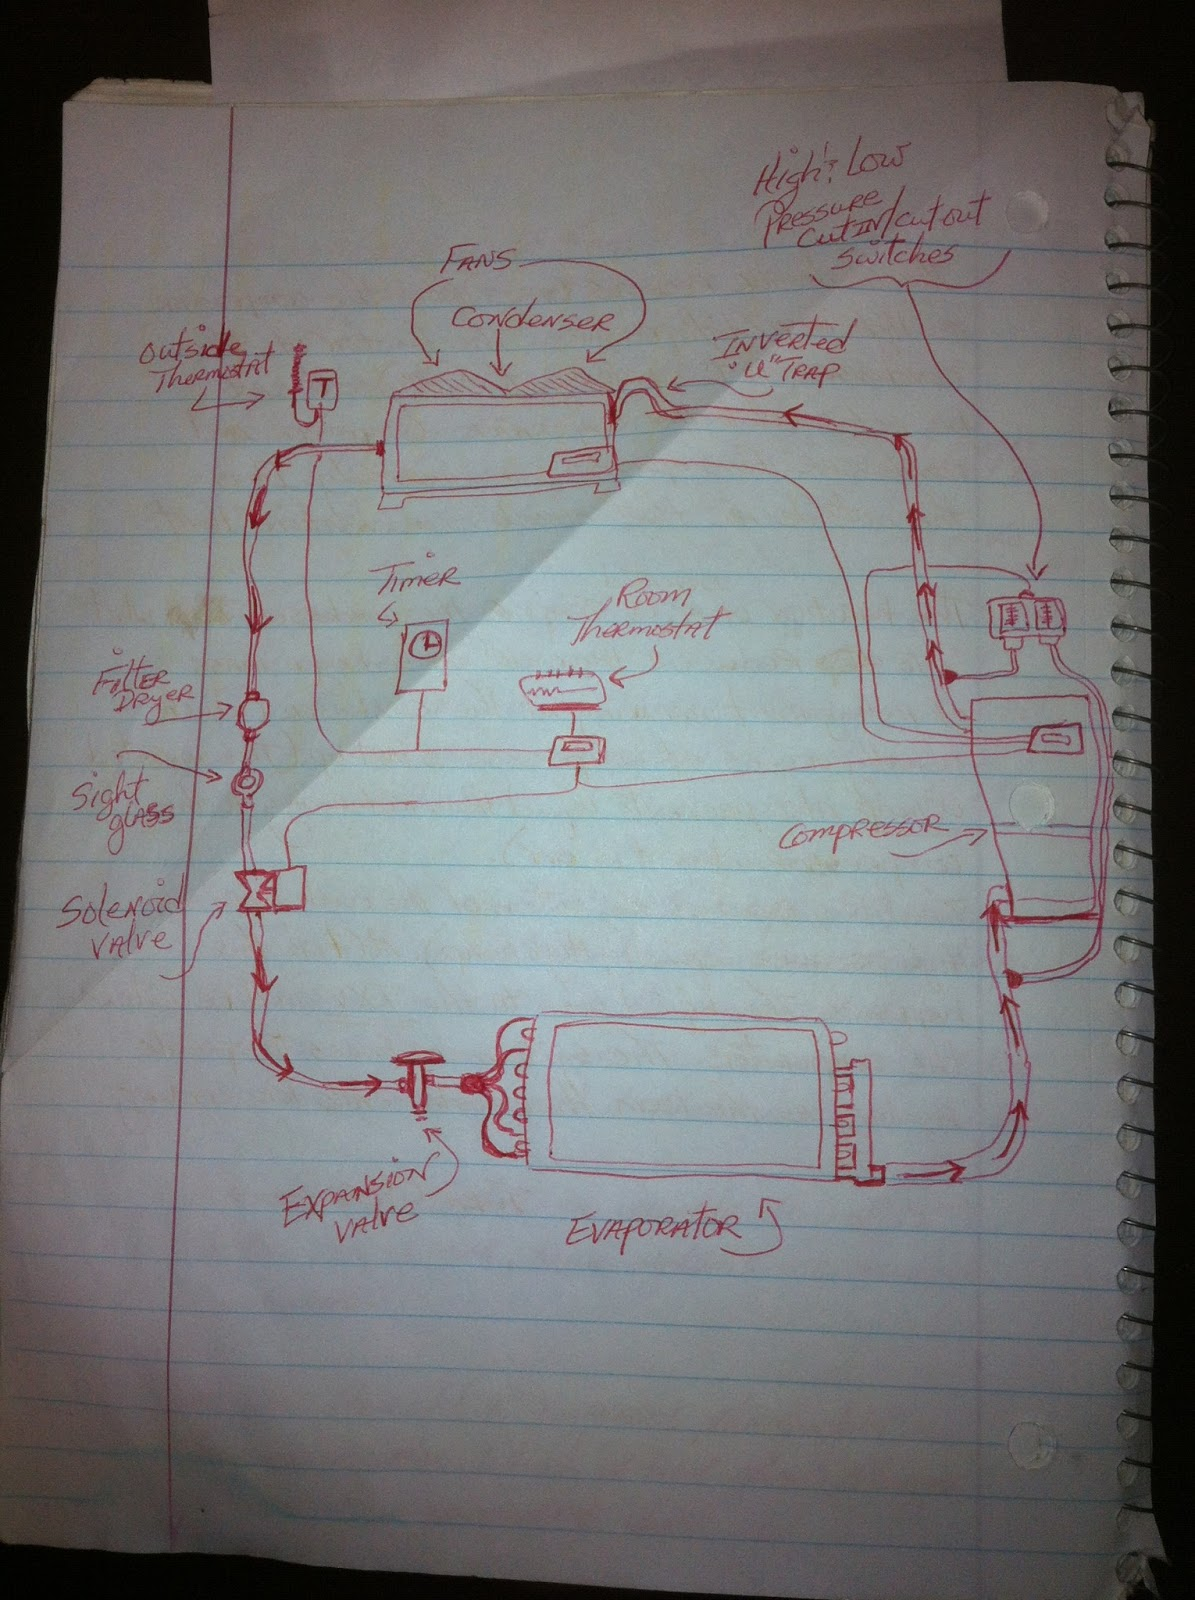 Intertherm Water Heater Hse 30f 240s Thermostat Heating Element Electric Furnace Wiring Diagram Share The Knownledge Below Is A Hand Drawn Pic Of How I Understand Workings Basic Refrigeration Cycle Pulled It From Some Old Classroom Notes